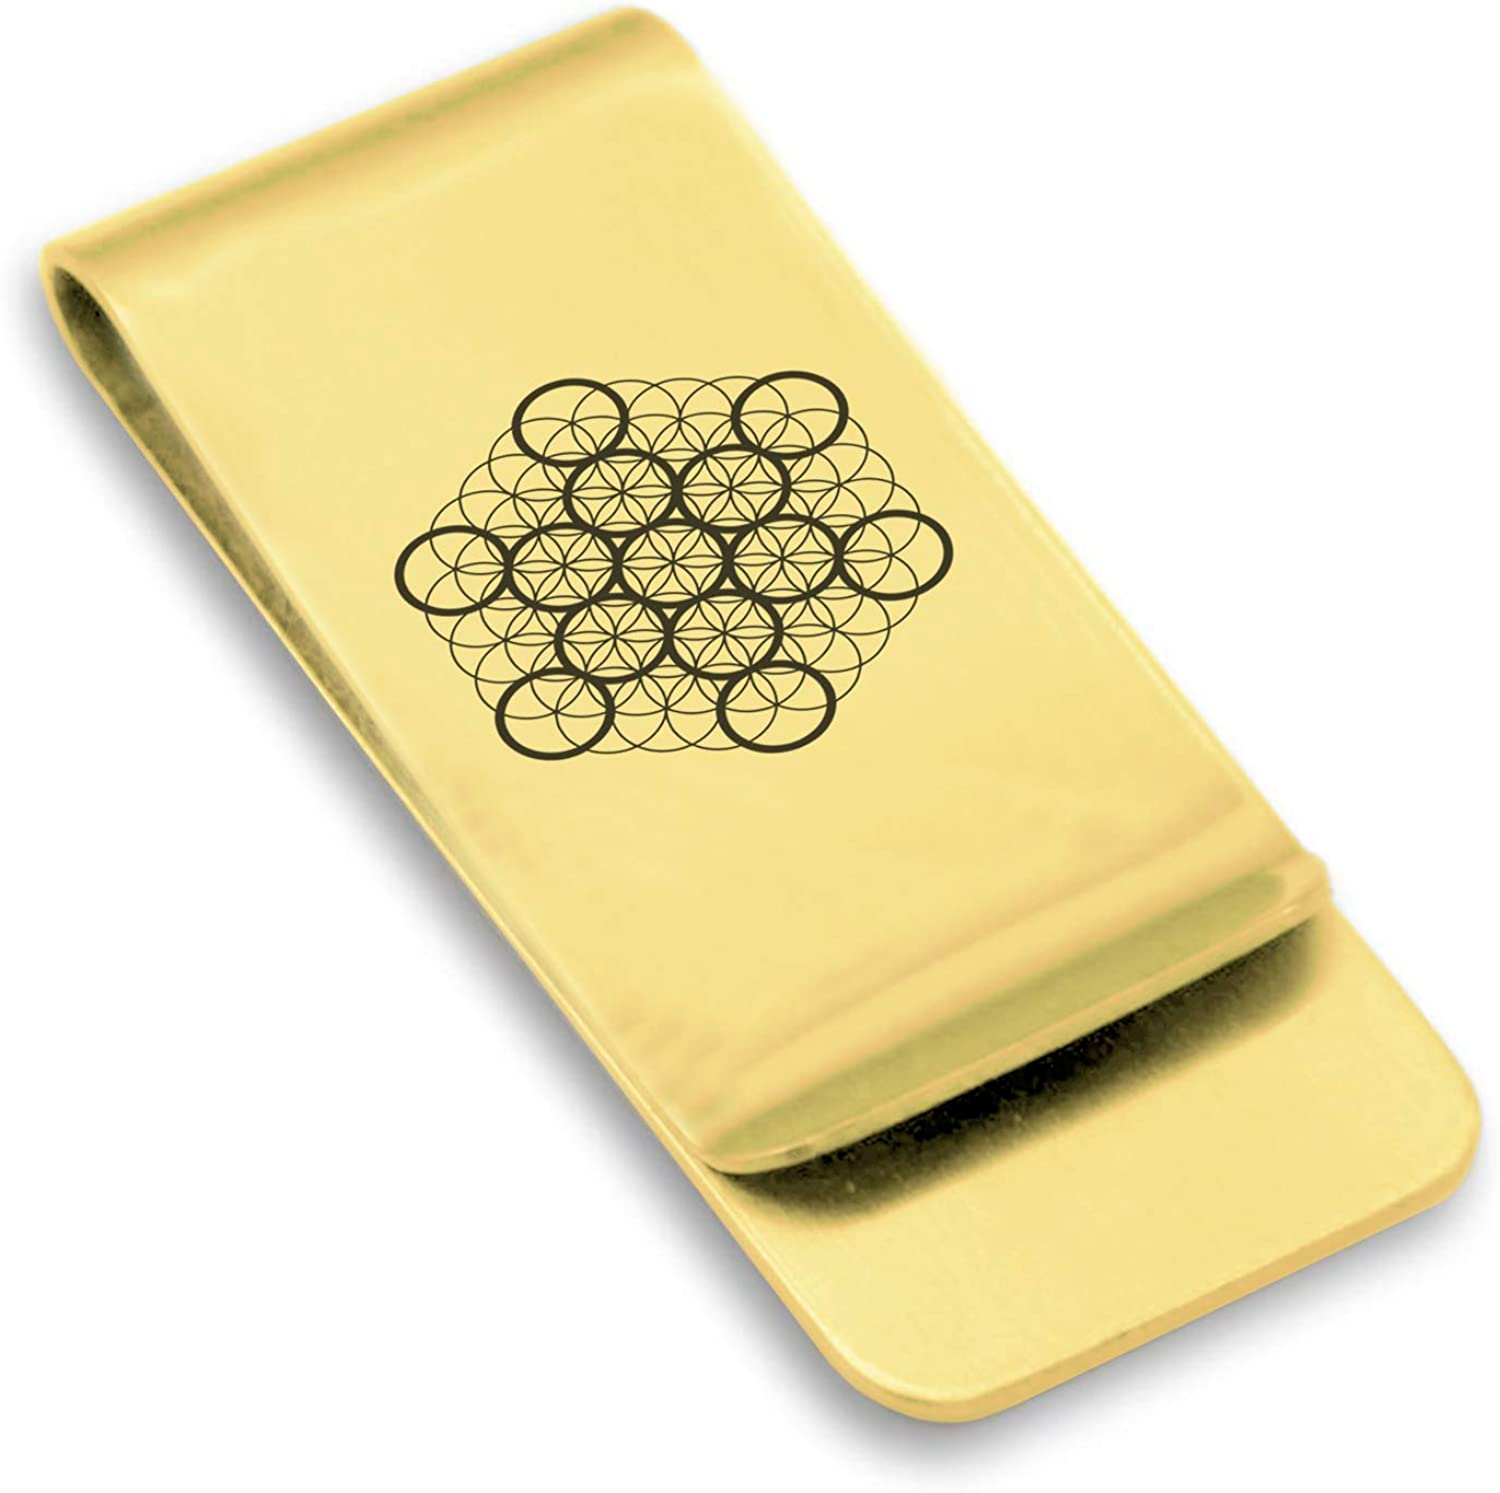 Comfort Zone Studios Stainless Steel Sacred Geometry Classic Slim Money Clip Credit Card Holder